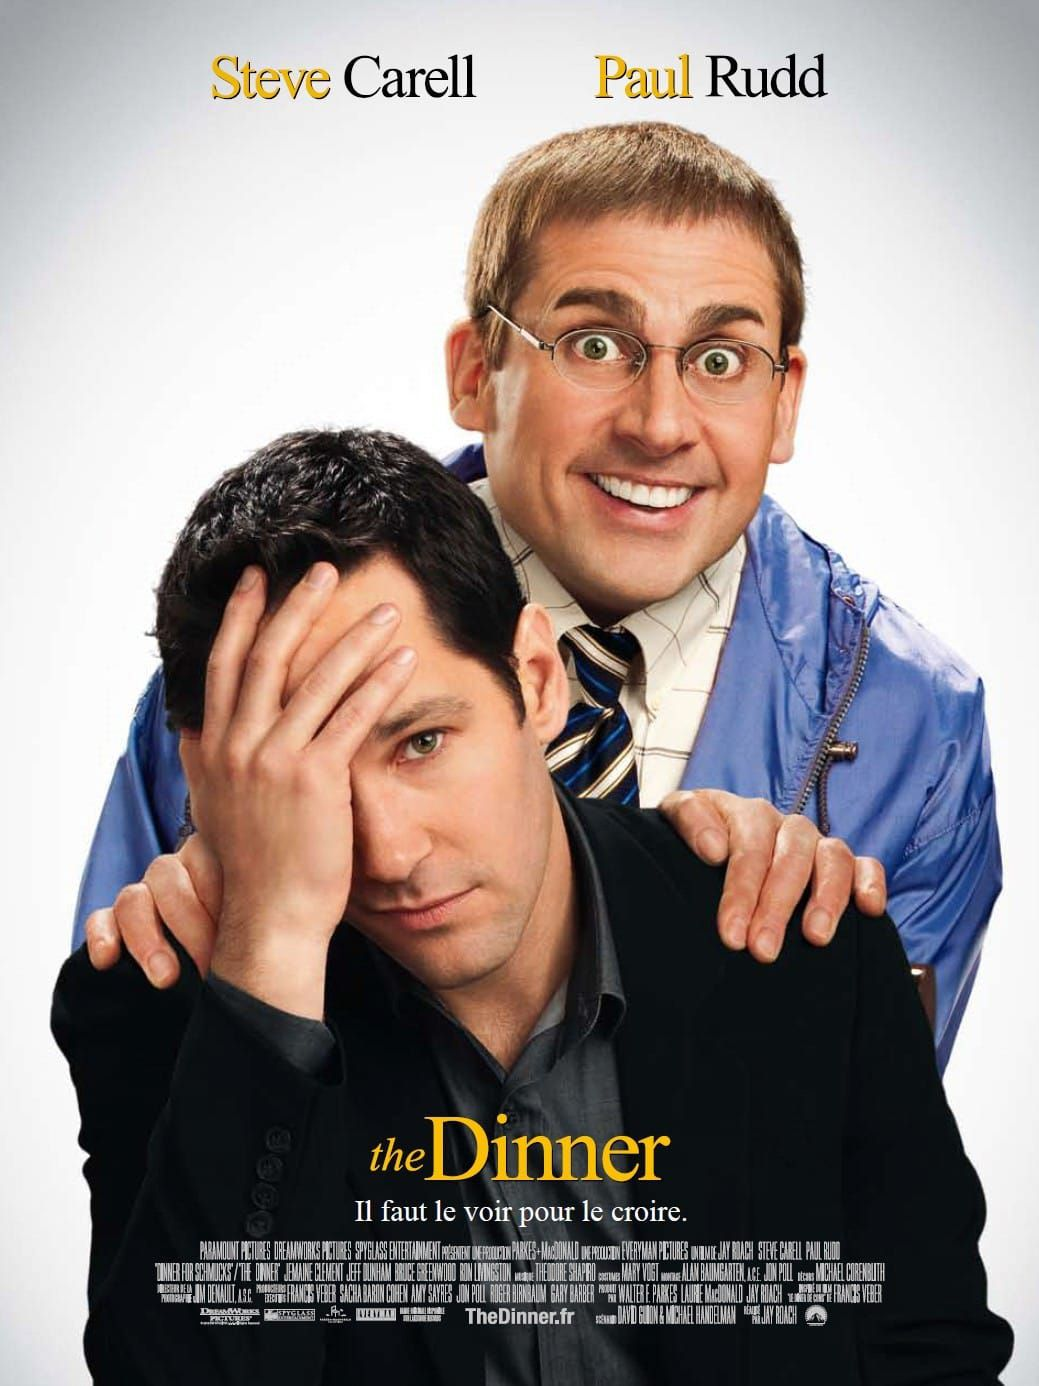 The Dinner - Film (2010) streaming VF gratuit complet